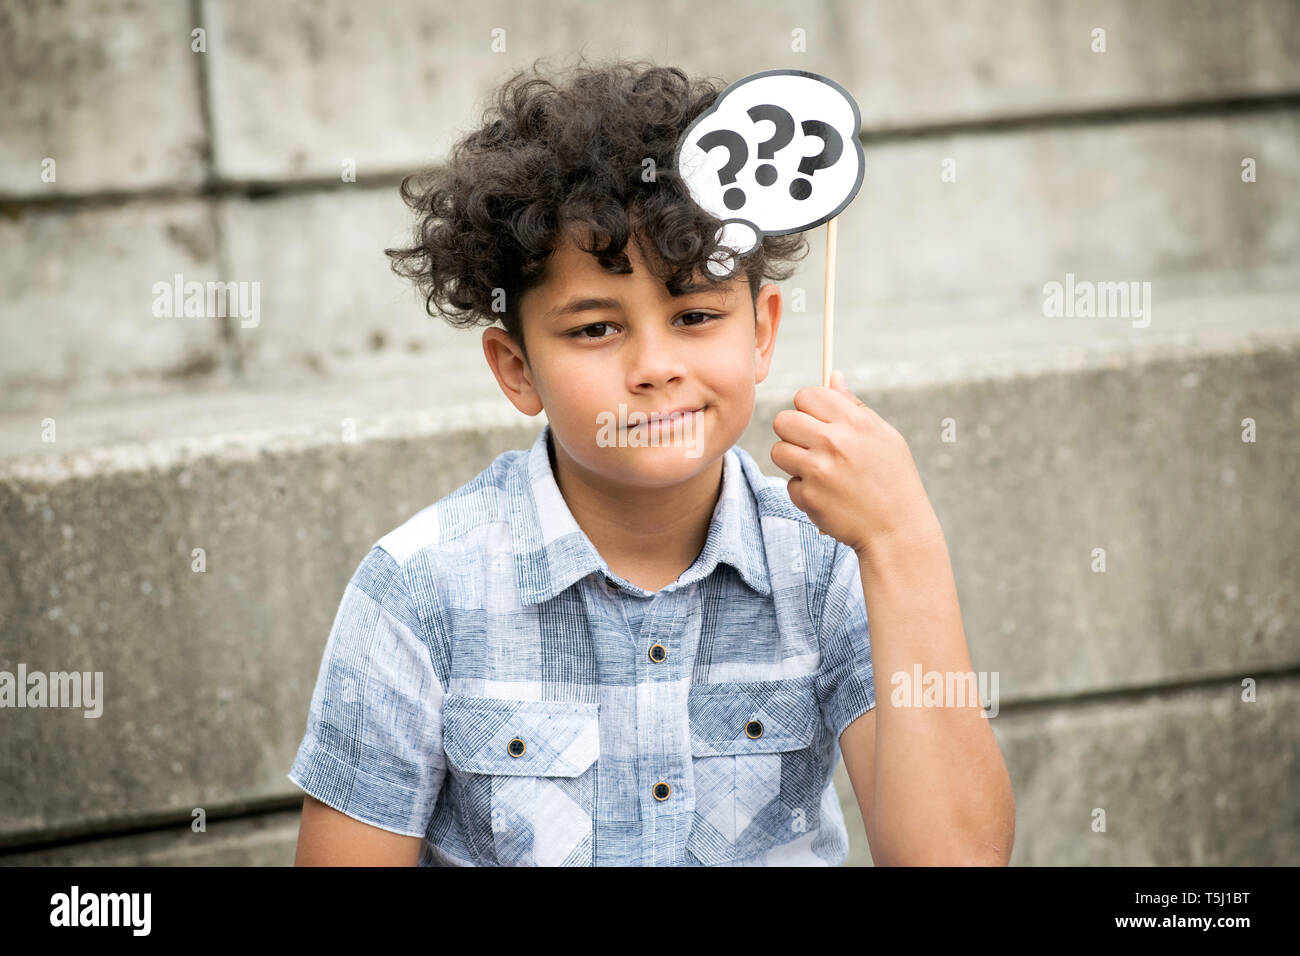 Confused young boy sitting thinking deeply with question marks on a party favor holding them to his head with a charismatic smile as he sits outdoors  - Stock Image